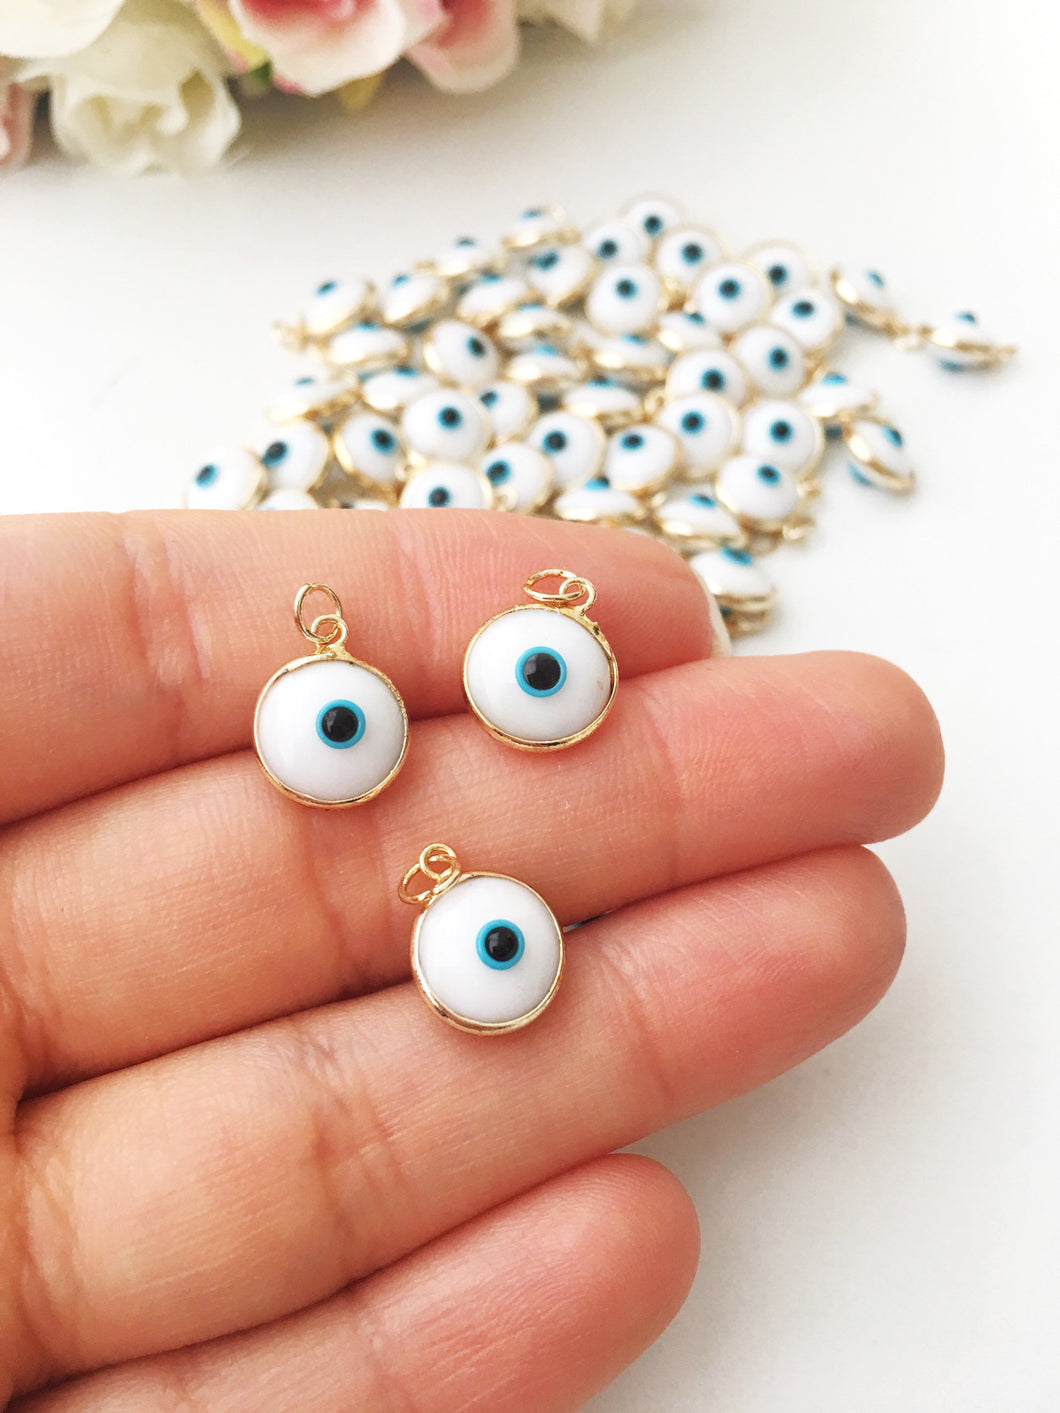 White evil eye beads, evil eye charm, glass evil eye charm, evil eye connector - Evileyefavor